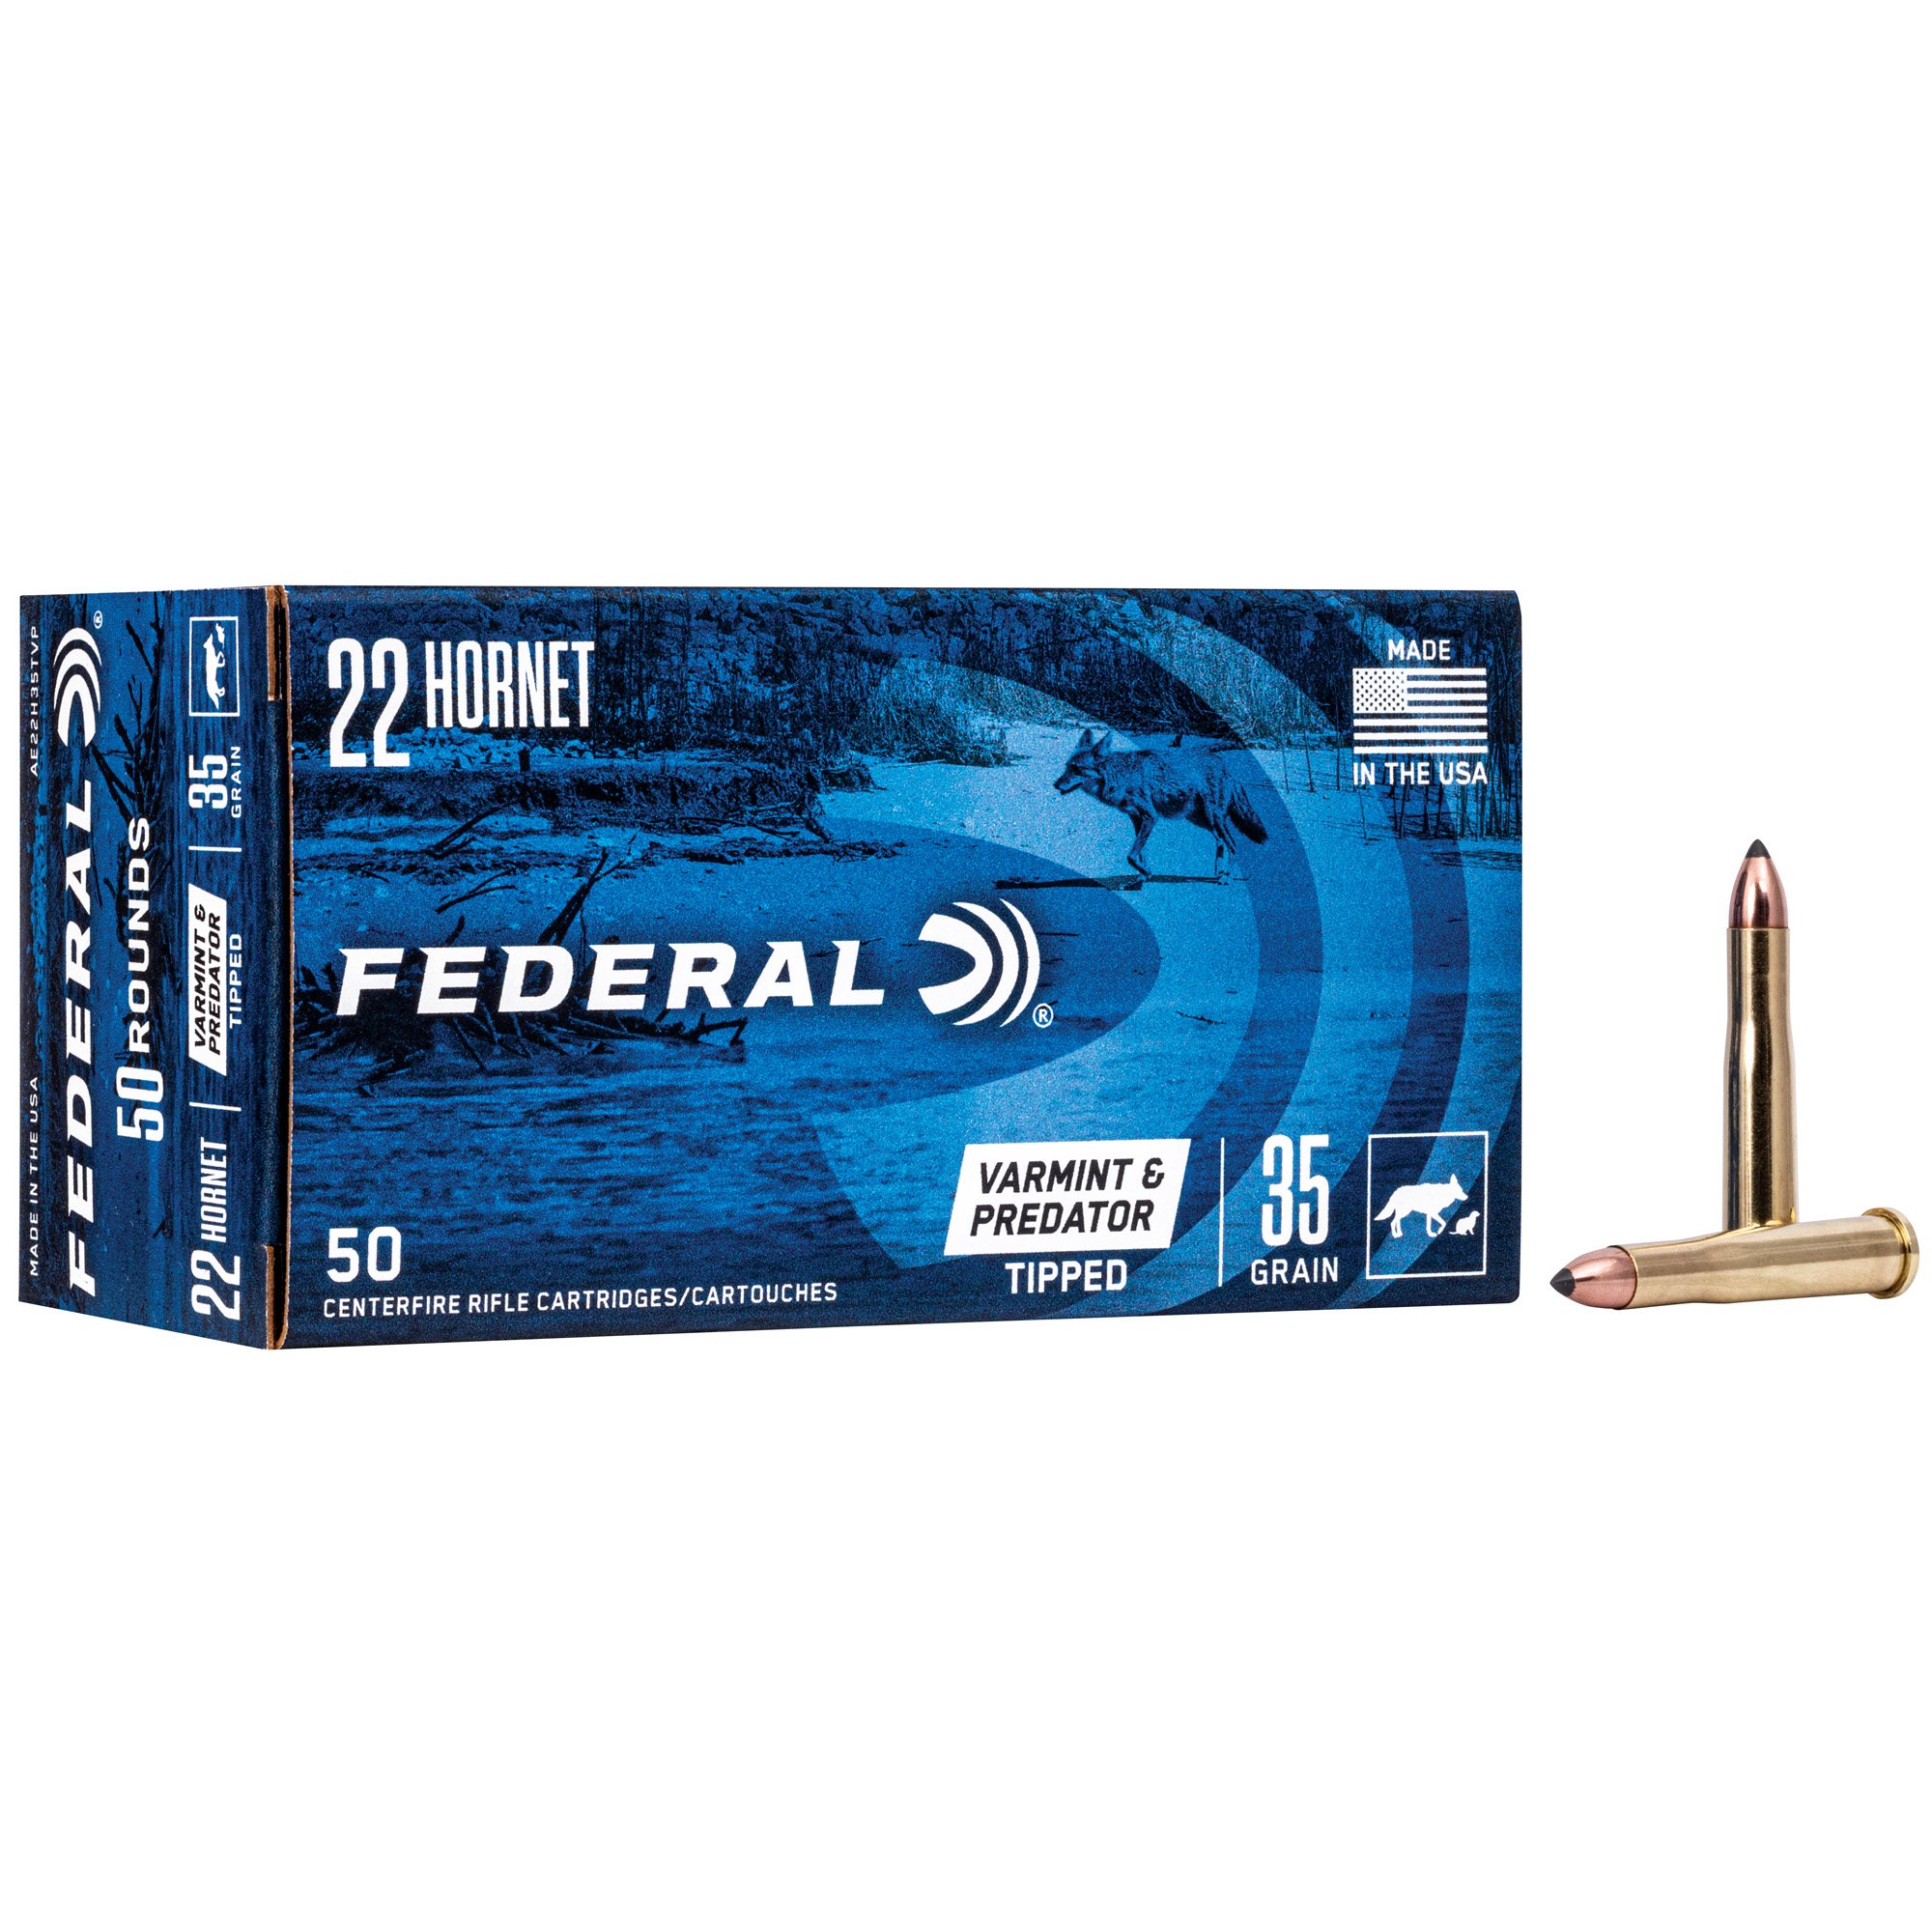 Fed Am Eagle V&p 22hrn 35gr 50/500